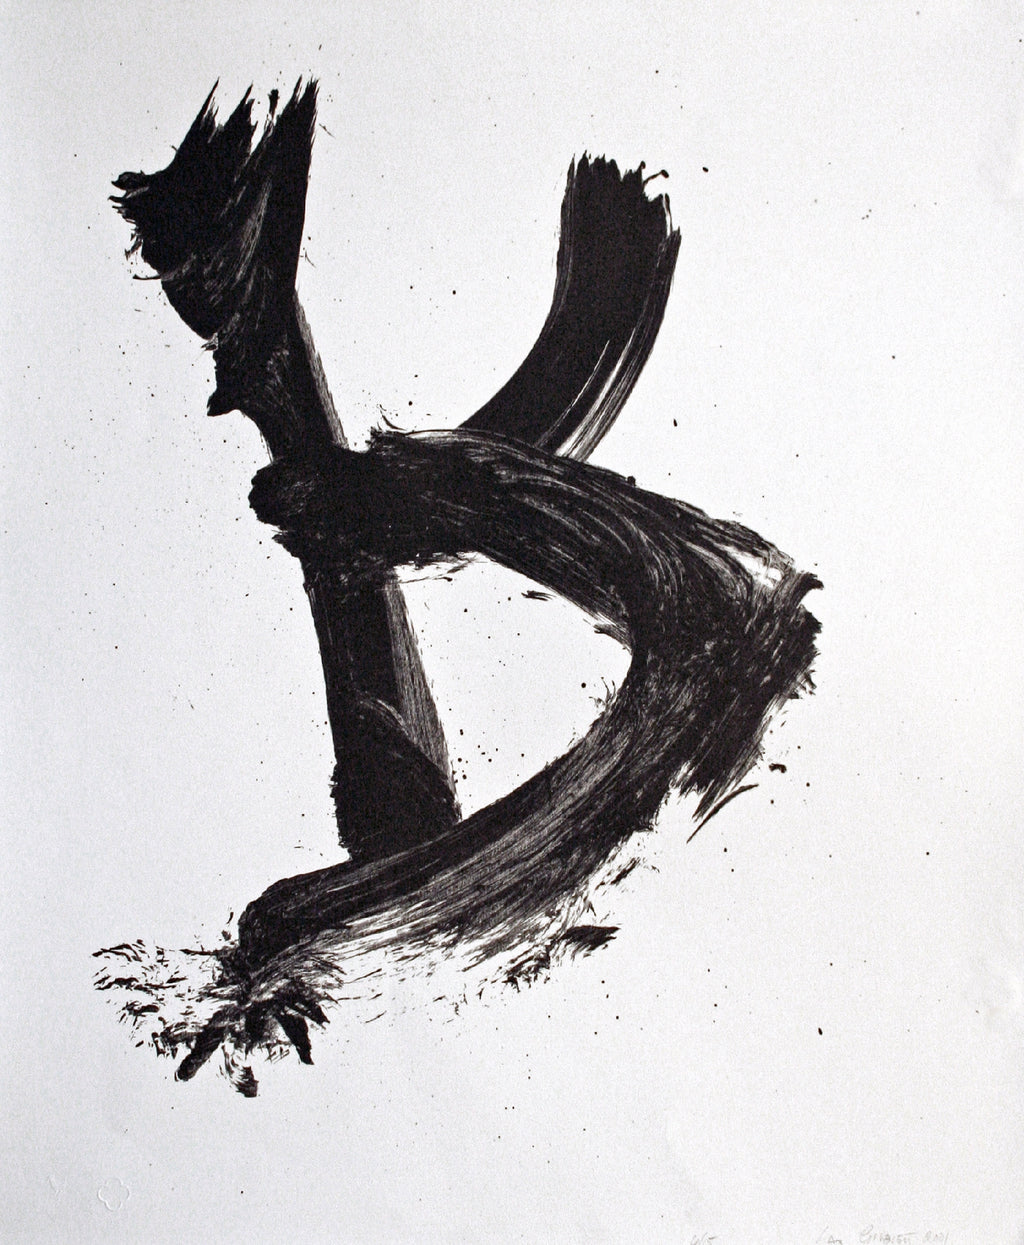 Max Gimblett, Rooster, 2001  edition of 15  lithograph  661 x 553mm